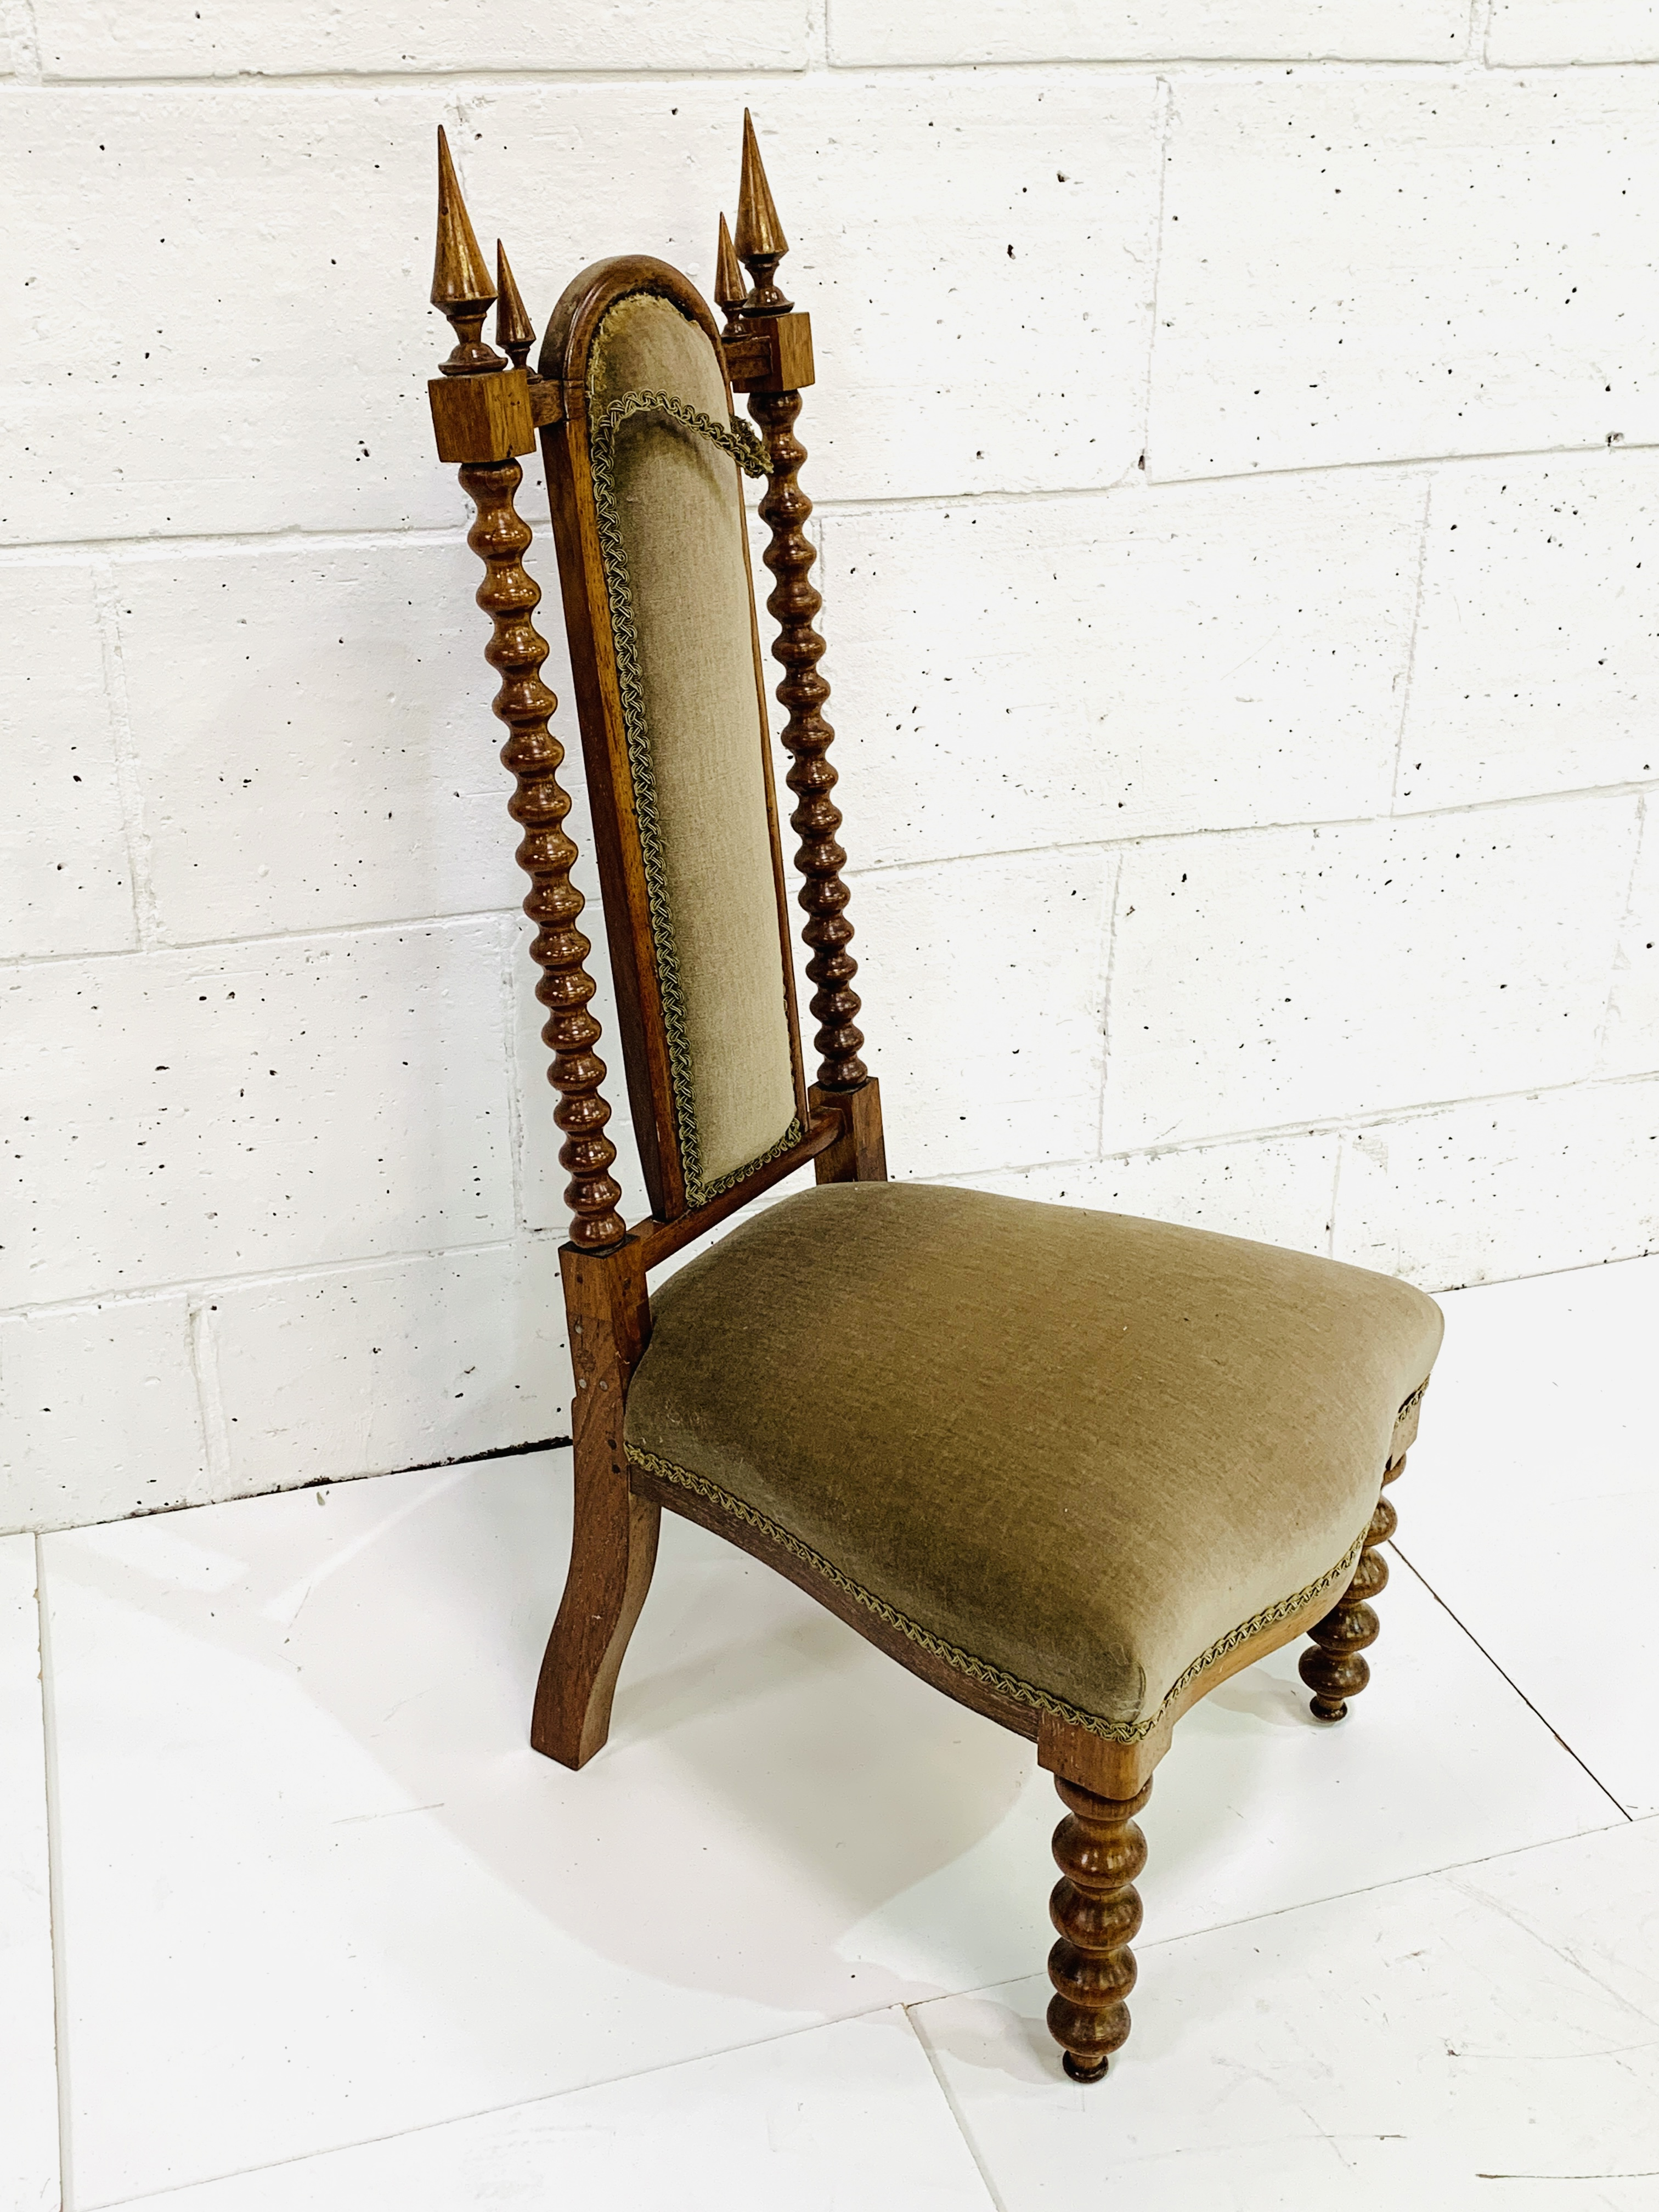 Upholstered decorative hall chair - Image 4 of 4